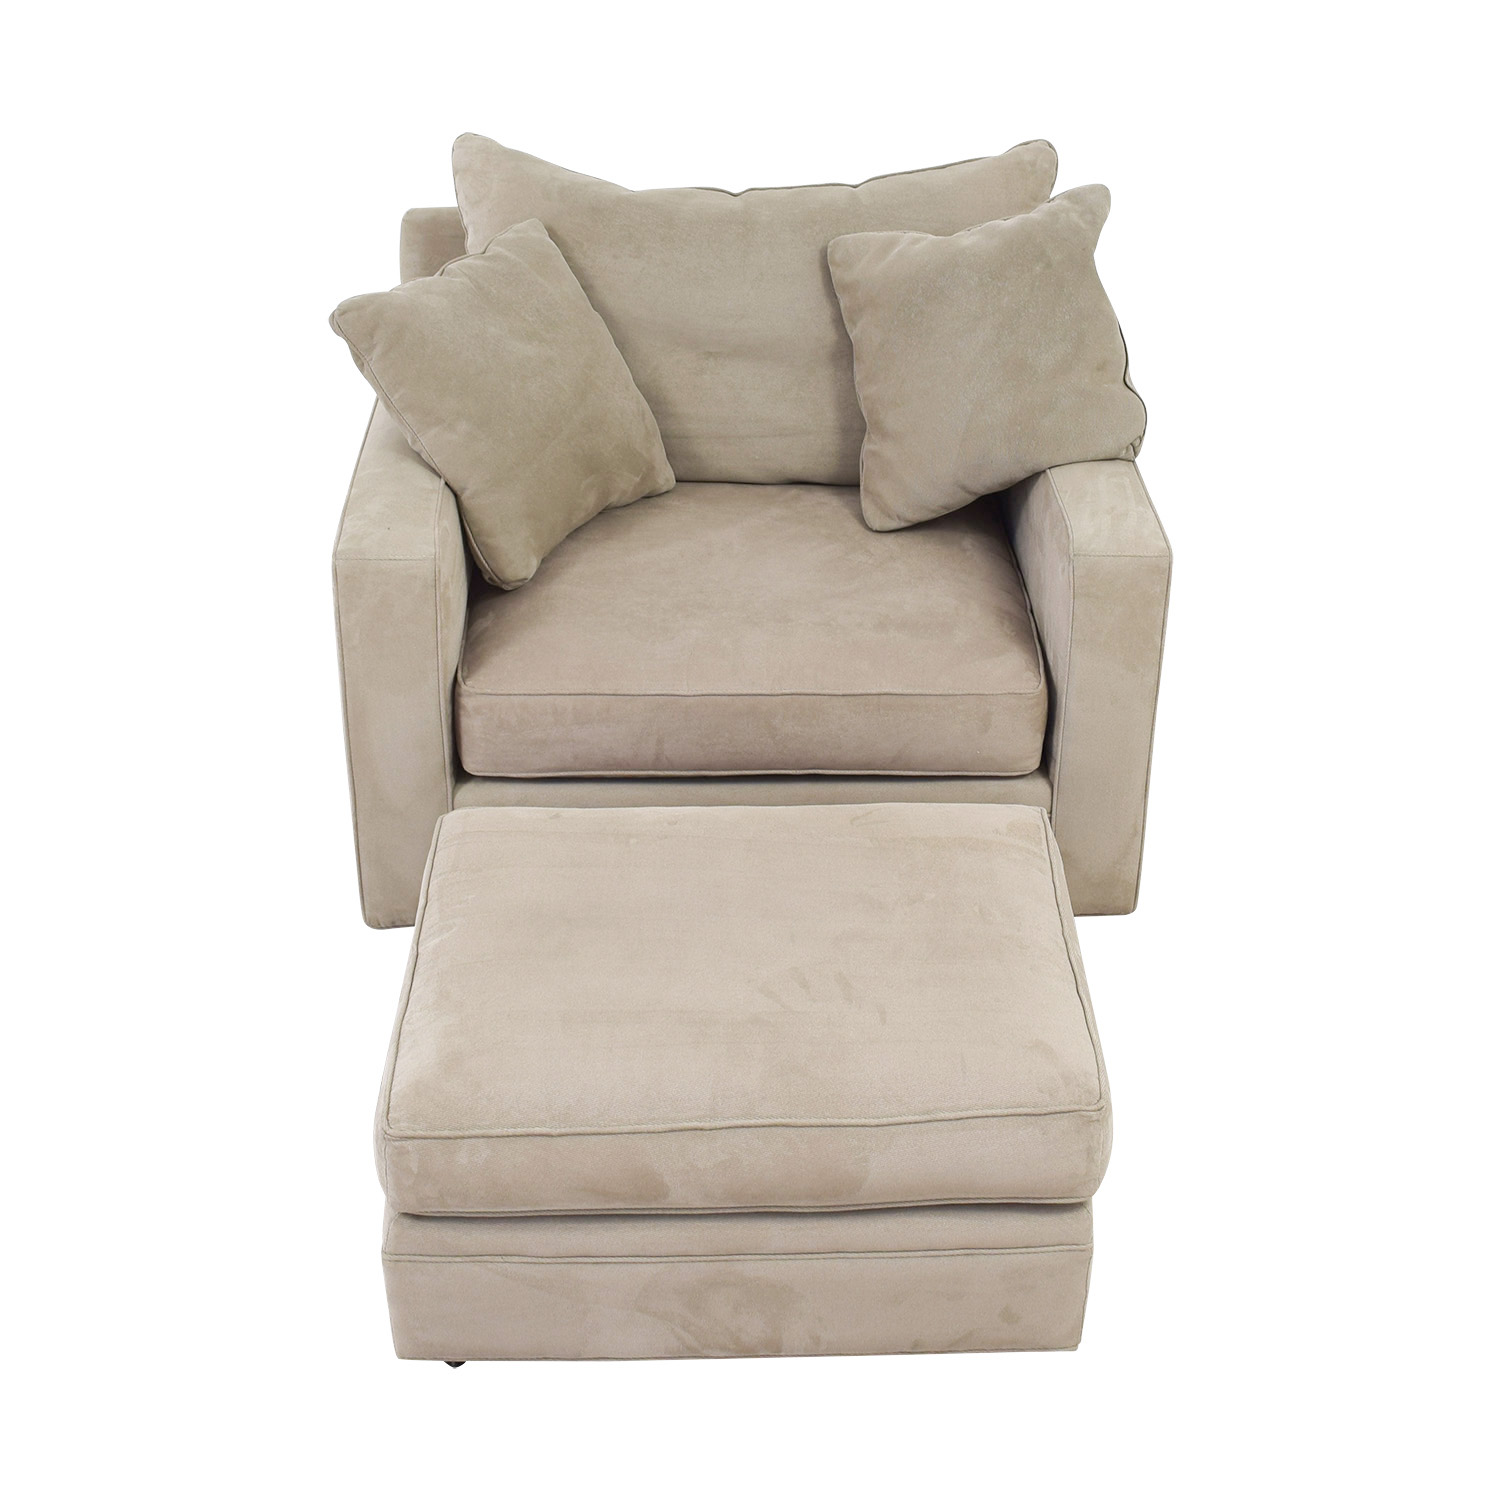 Room & Board Room & Board Metro Grey Accent Chair and Ottoman grey